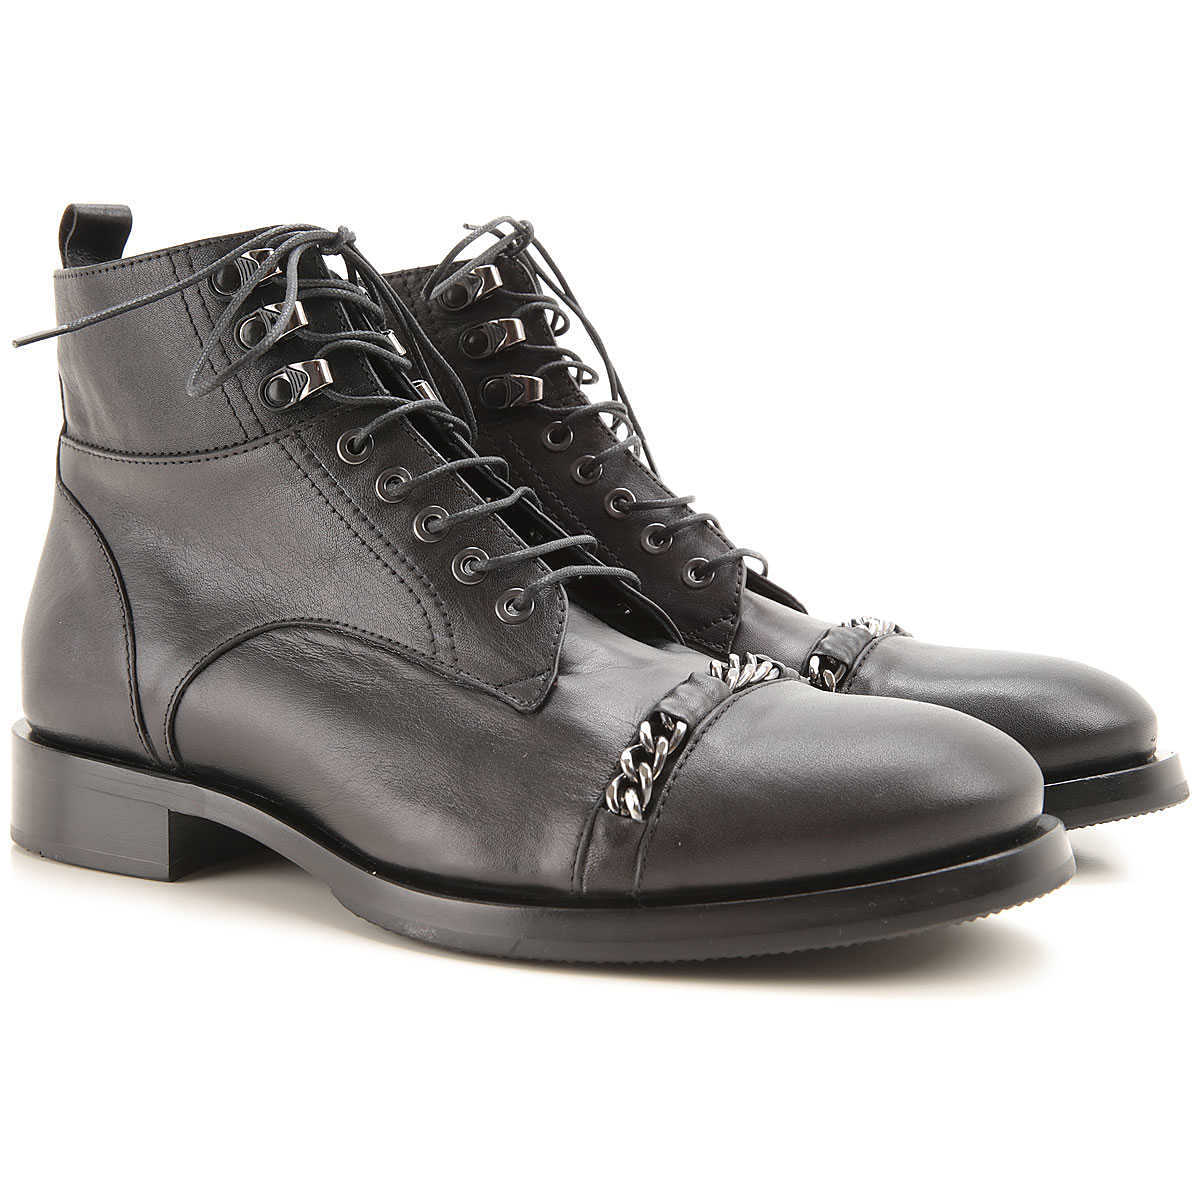 Karl Lagerfeld Boots for Men Booties On Sale - GOOFASH